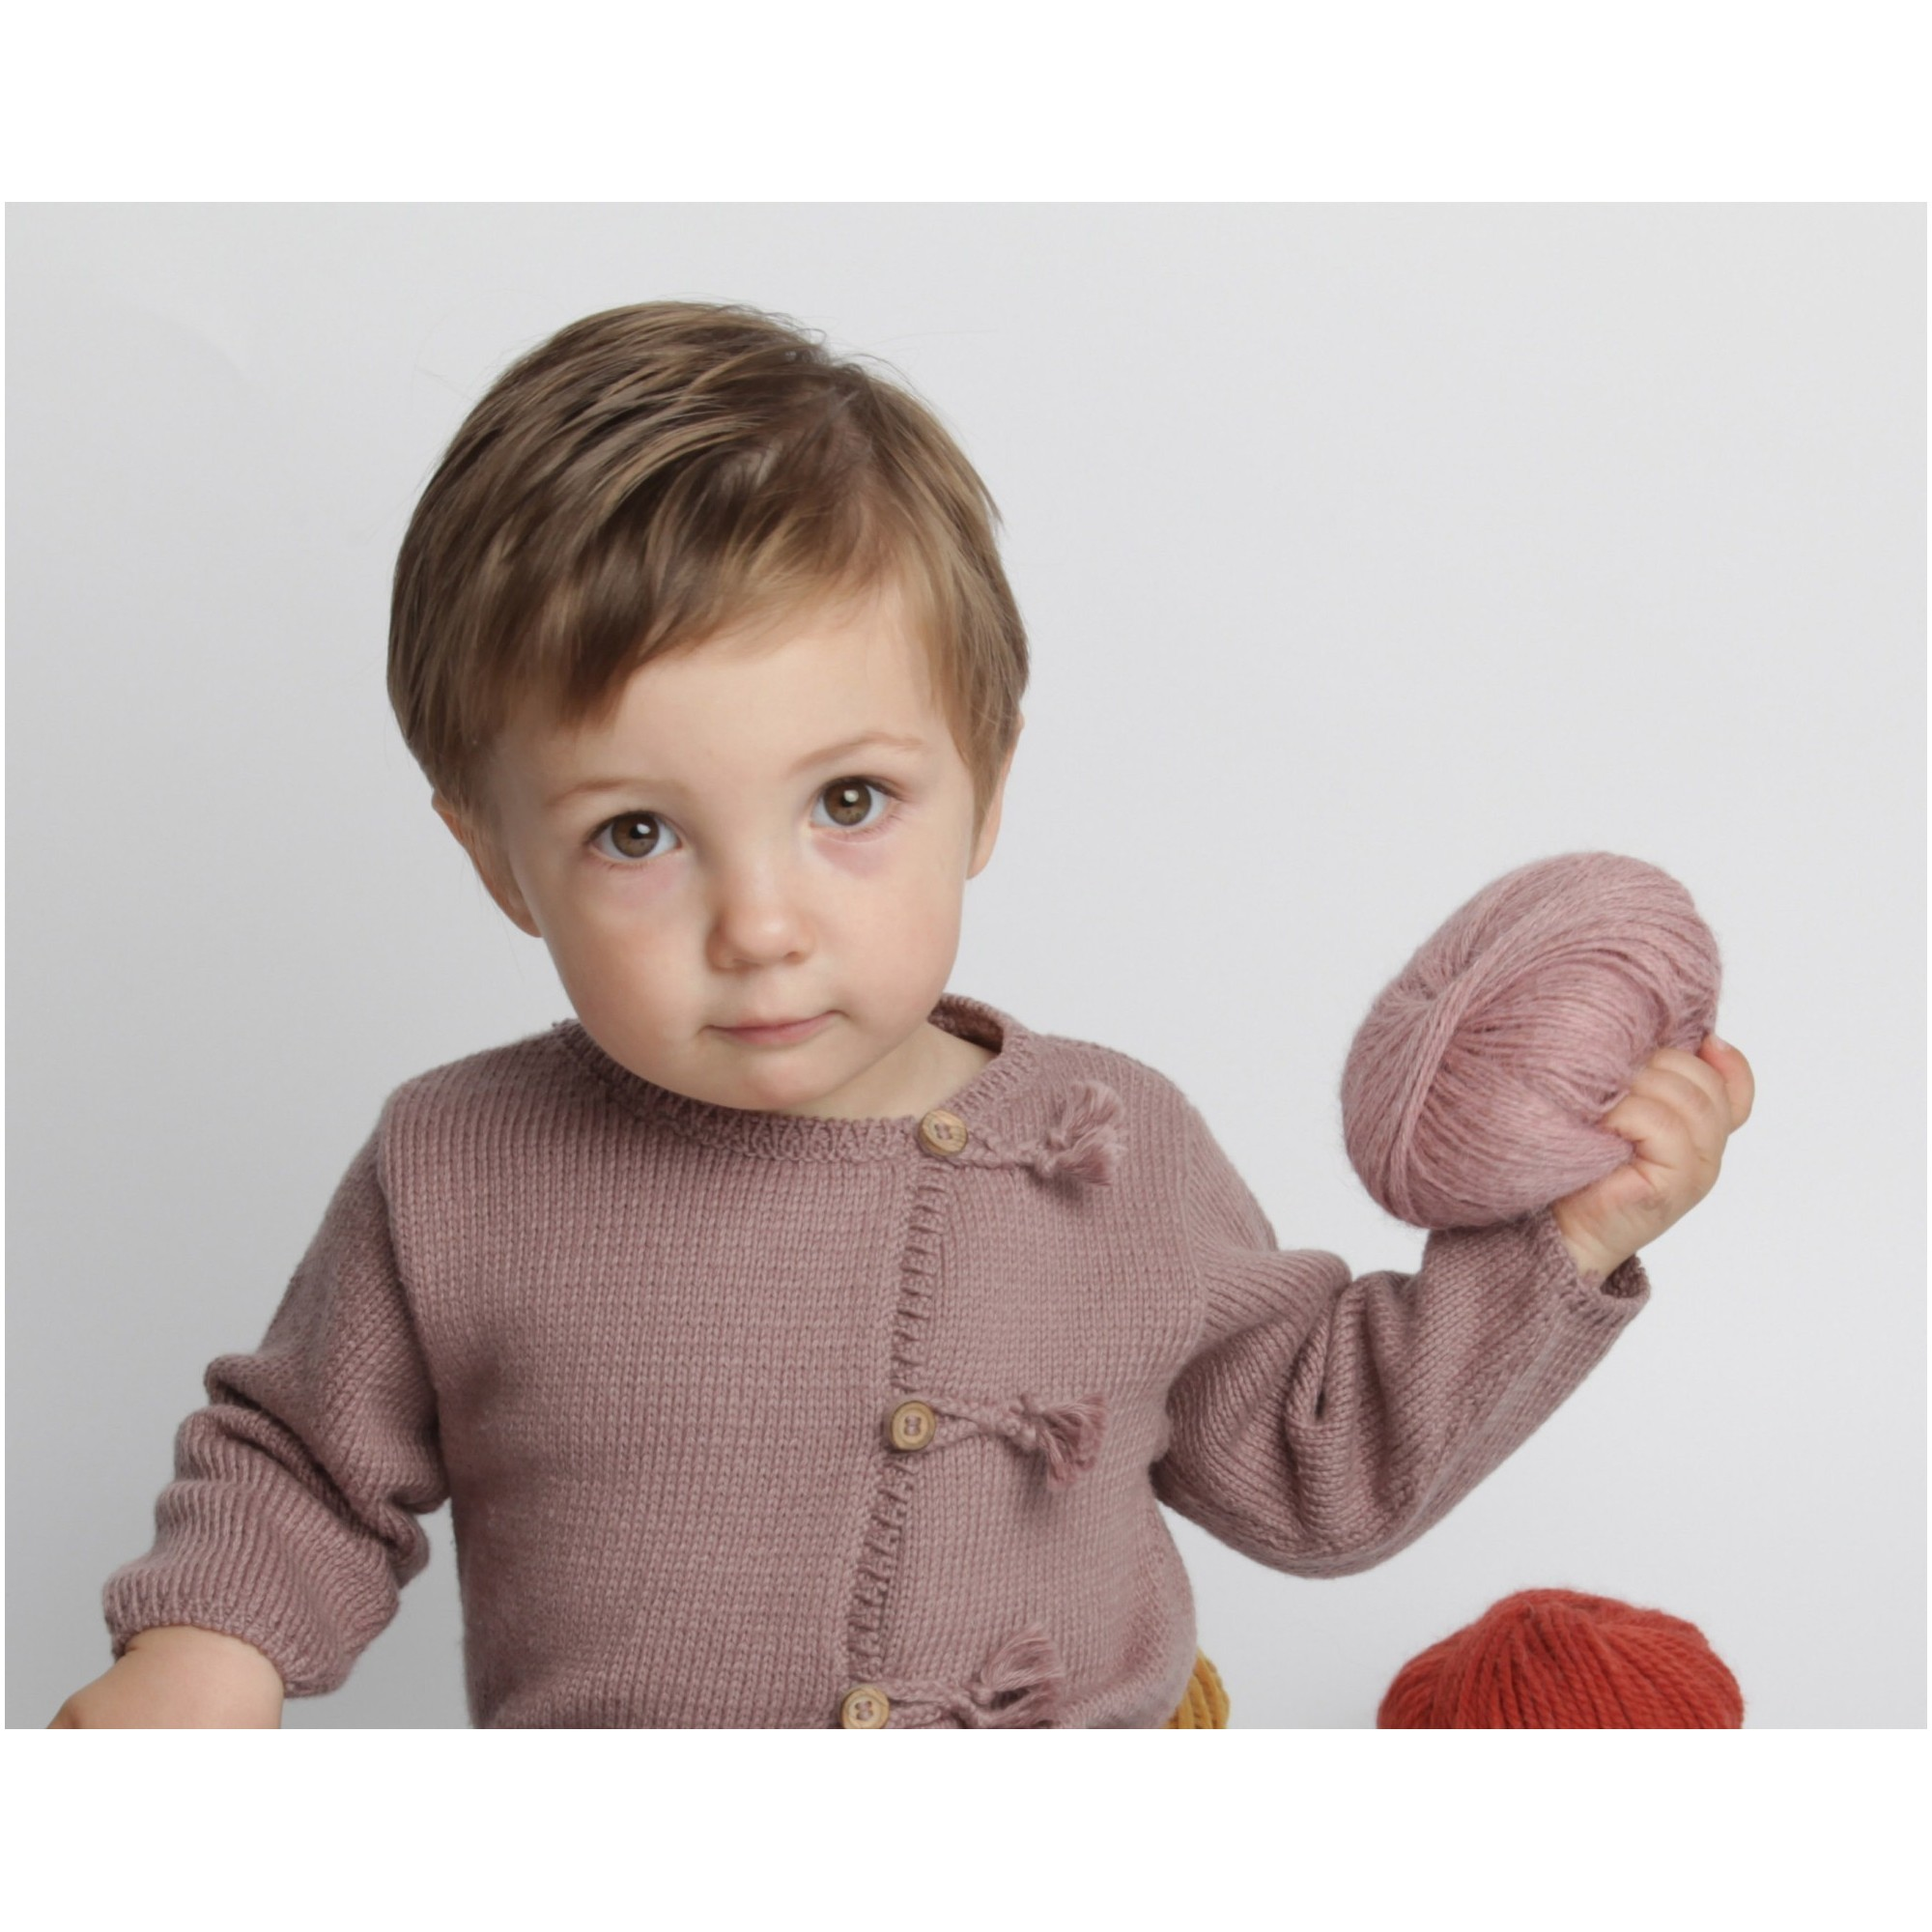 Taupe baby cardigan knitted in stockinette stitch made from cotton and cashmere yarns 3